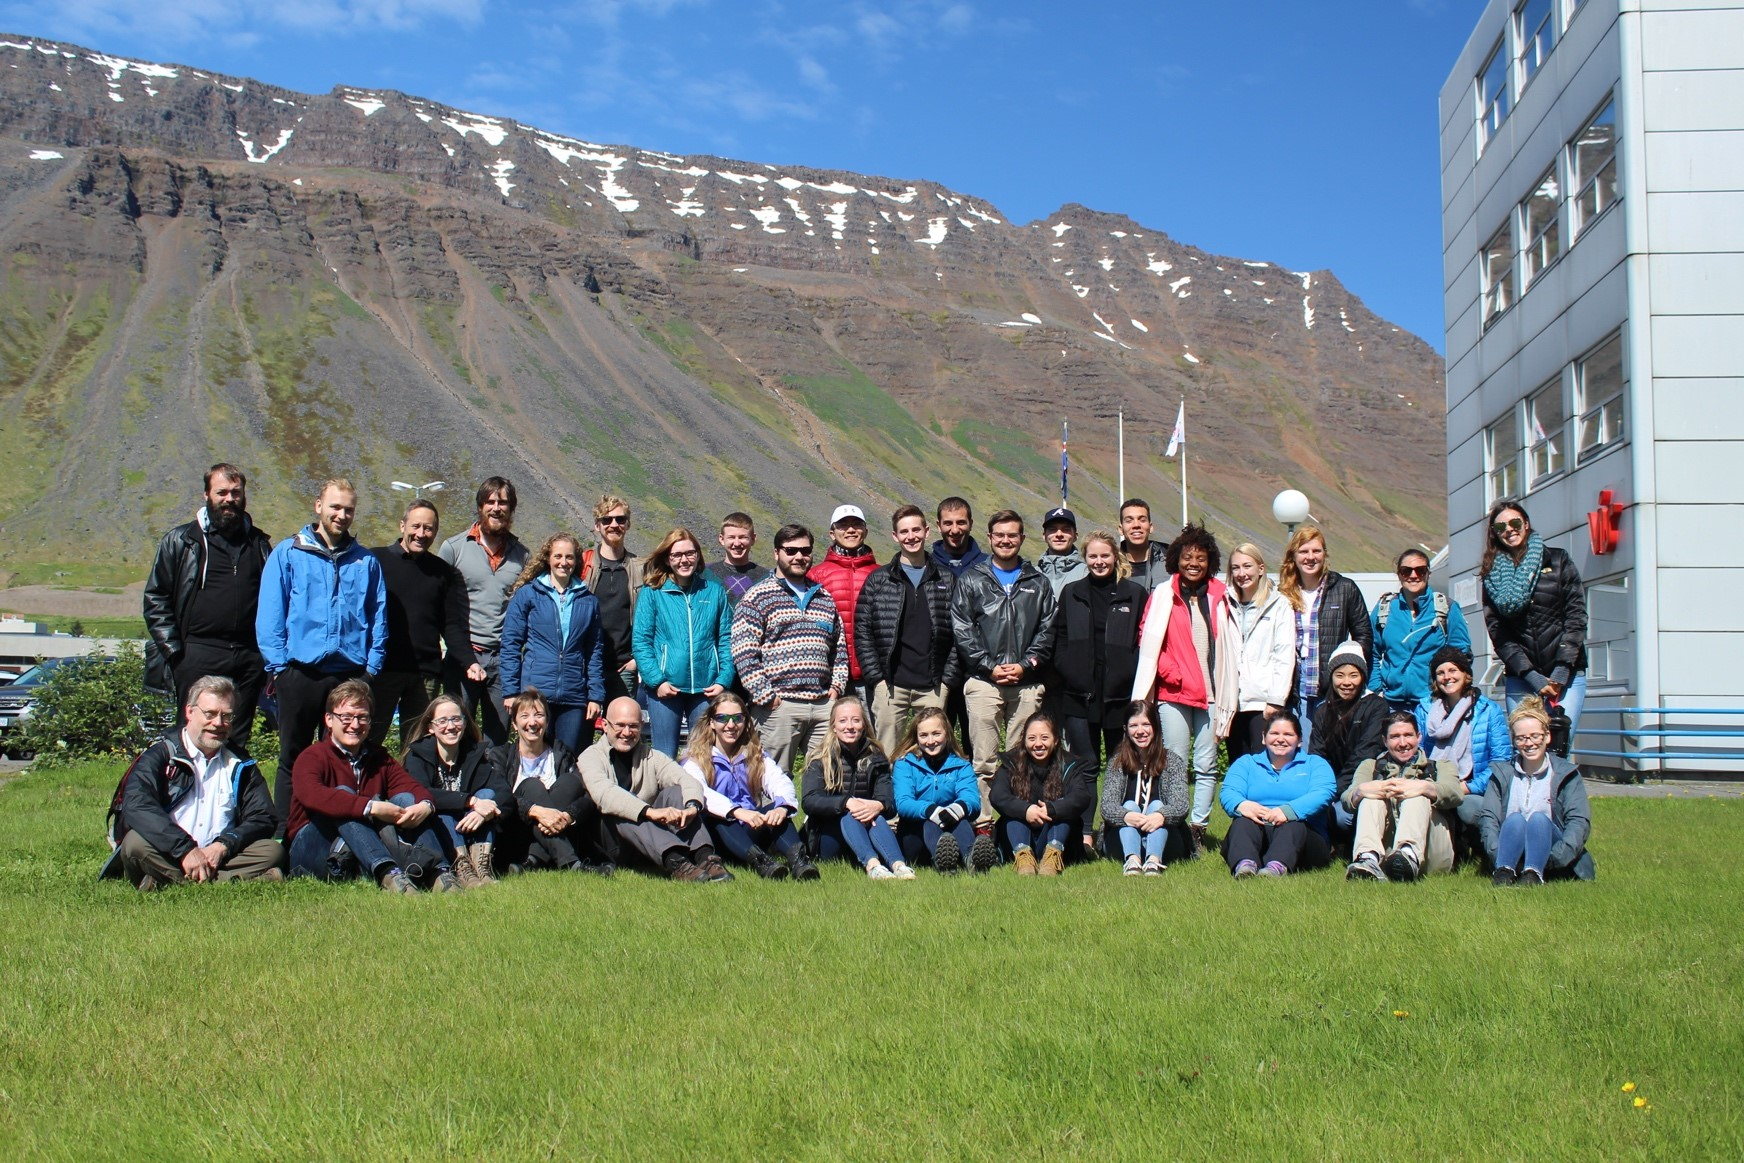 Current students meet '08 alumni at Iceland reunion